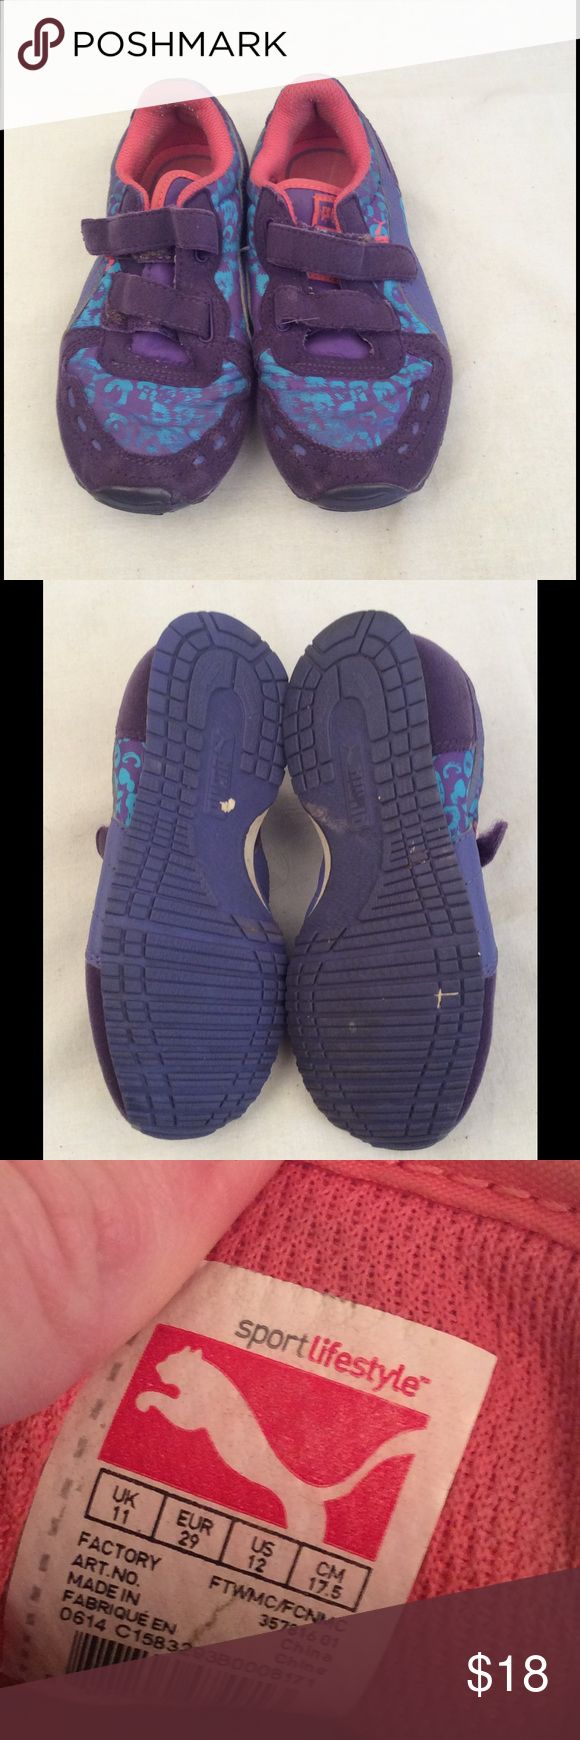 Girls Puma Shoes Girls Puma Shoes size 11 blue and purple in color and Velcro closure in great condition and comes from a smoke free home. ✅Reasonable offers considered. ✅Bundle for a discount & save on shipping ✅Same/next day shipping. Puma Shoes Sneakers